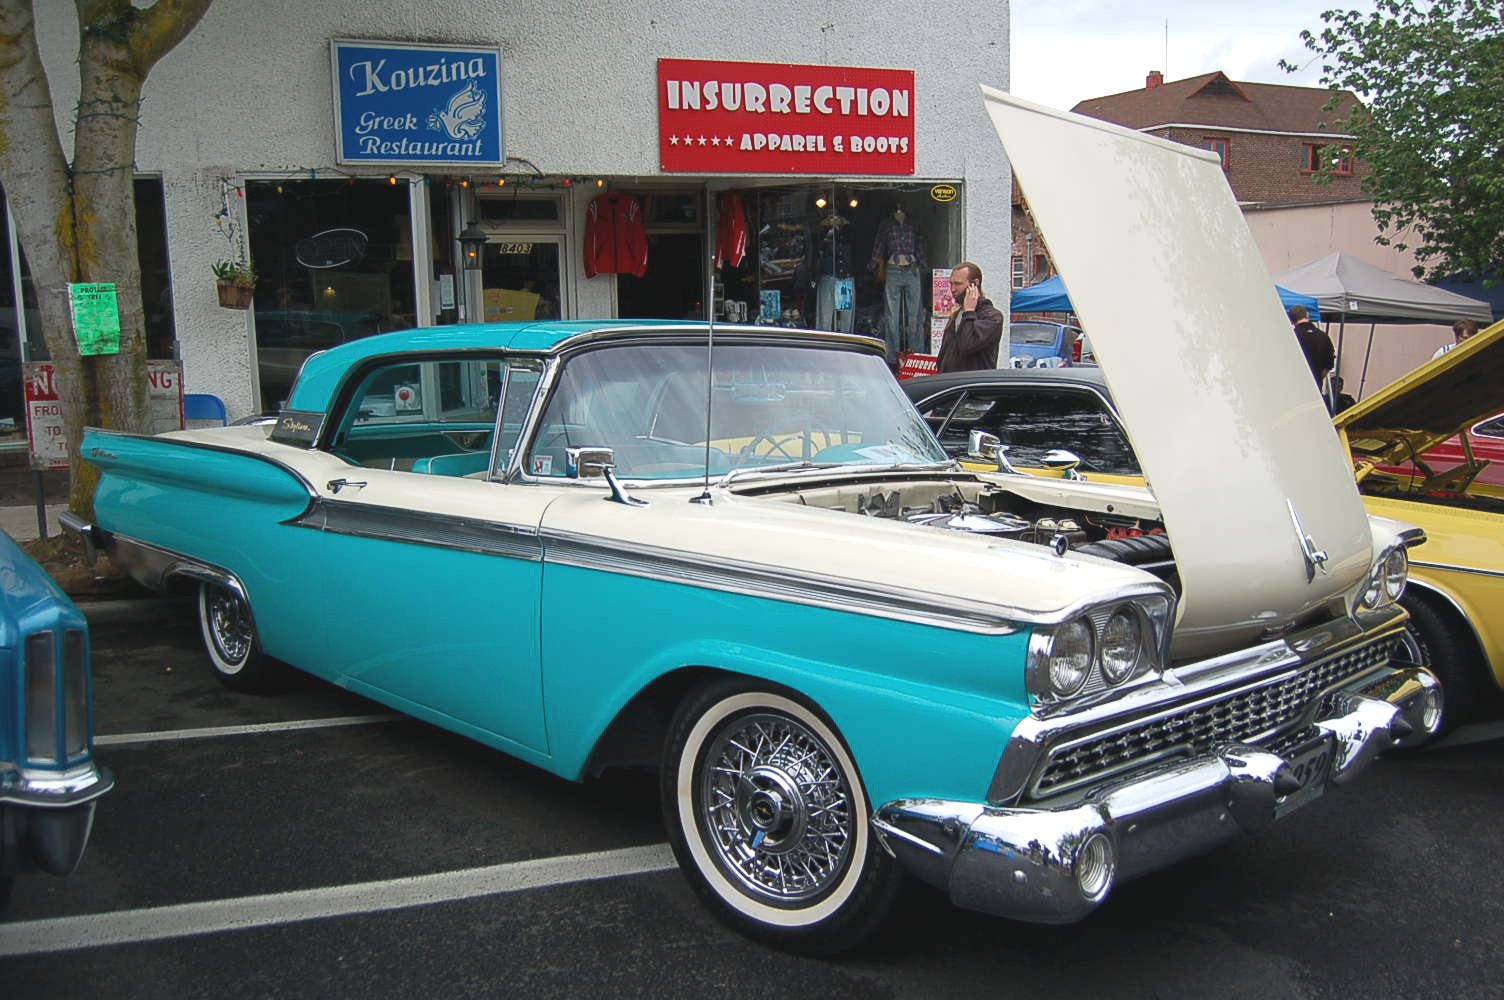 1959 ford galaxie skyliner retractable hardtop photos and specs from rh madchrome com 1951 Mercury Wiring Diagram 1965 Thunderbird Wiring Diagram